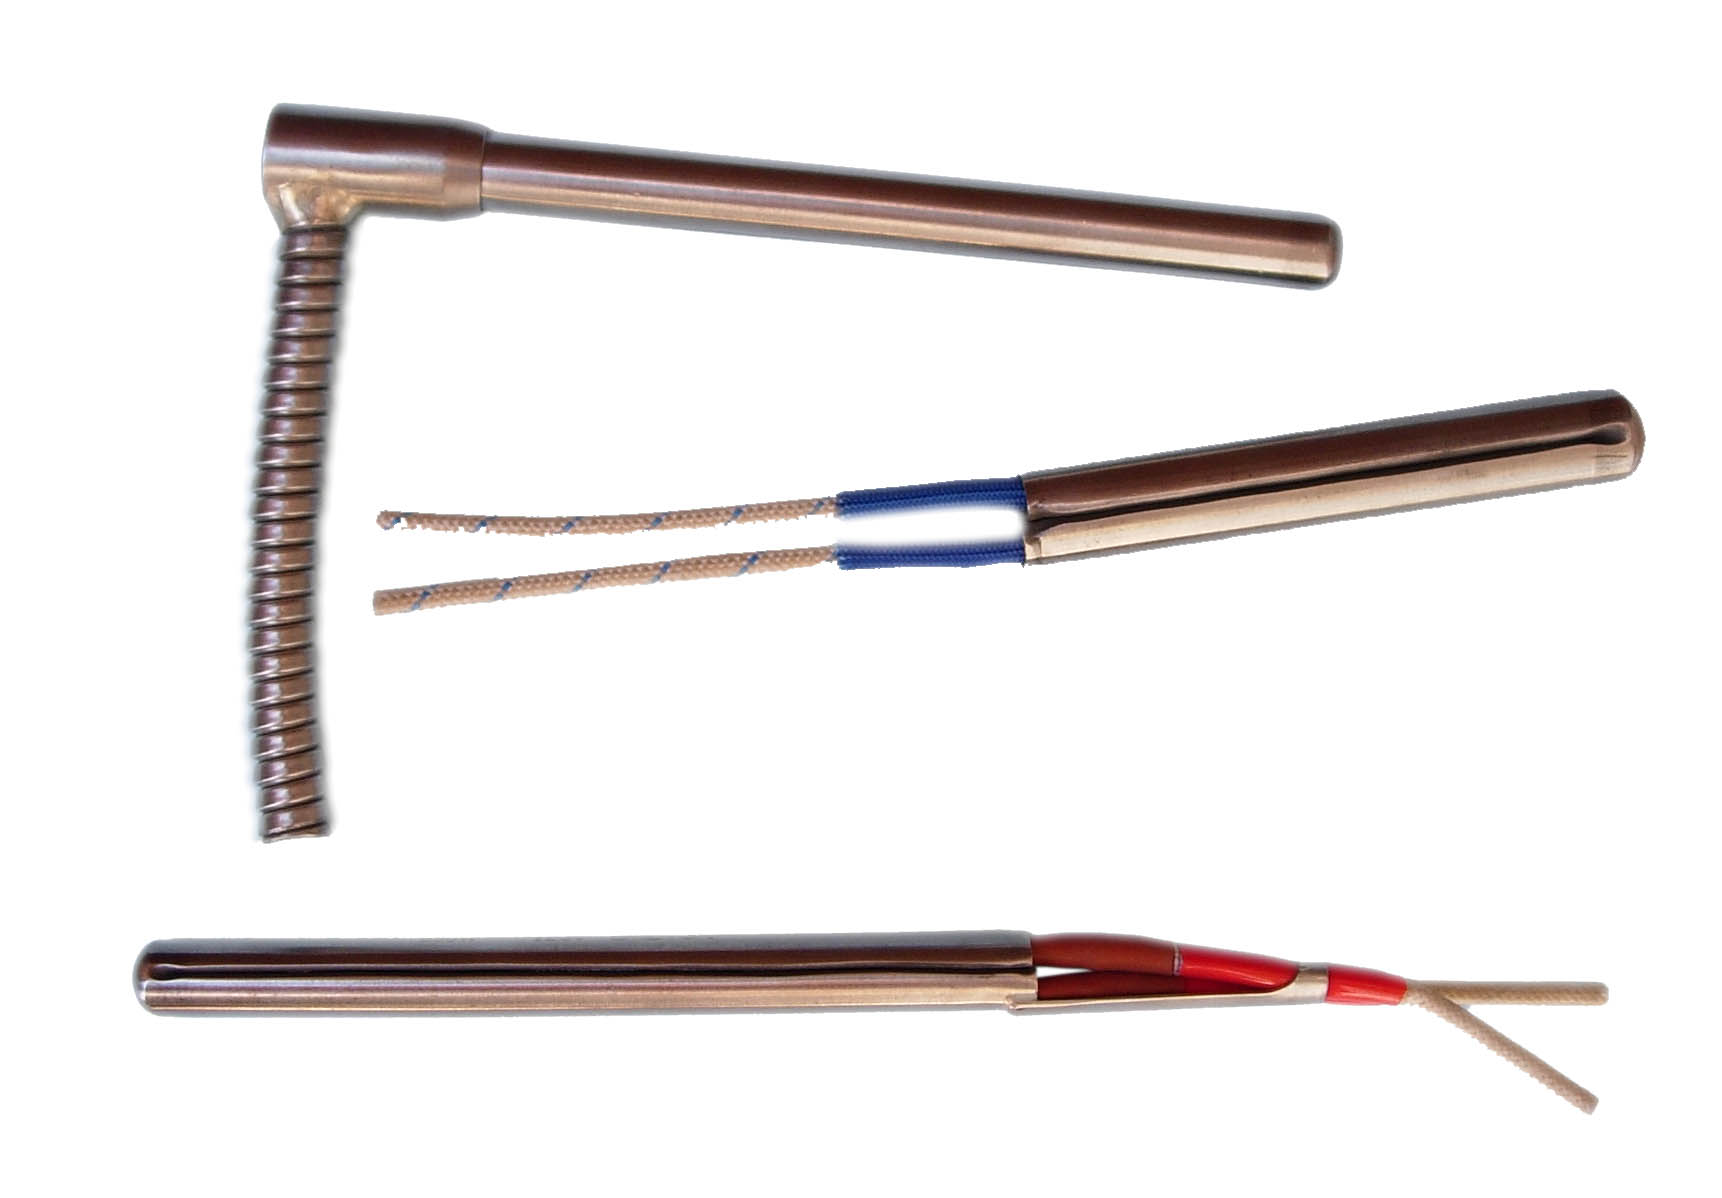 Different lead wires on Cartridge Heaters